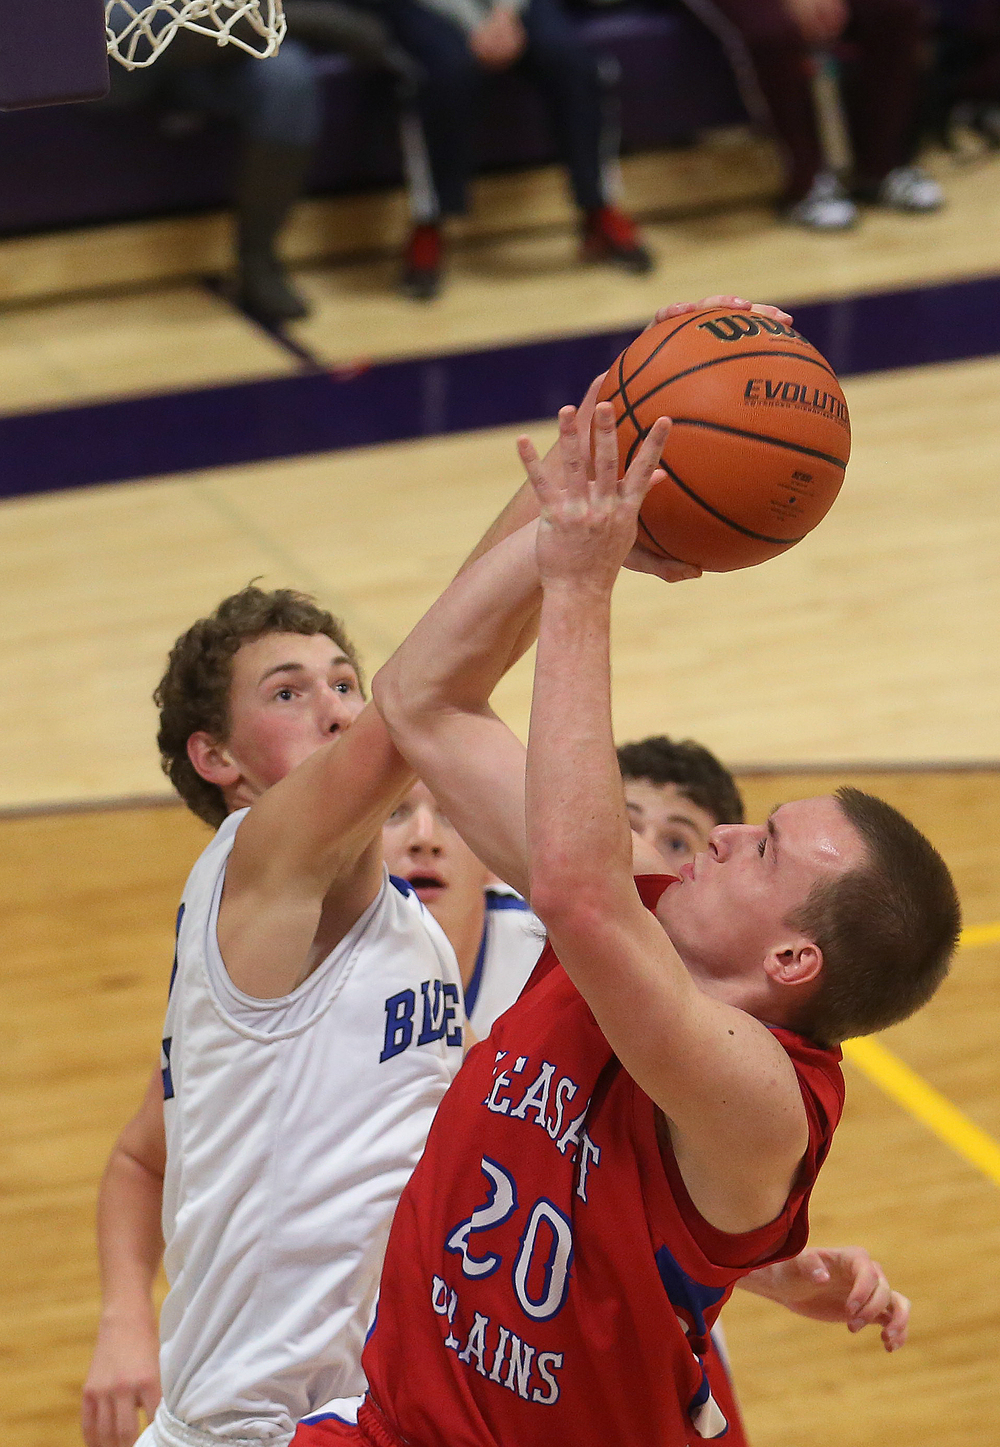 Bluejays defender Max Muller blocks a shot by Cardinals player Dylan Bee. Petersburg PORTA defeated Pleasant Plains 58-50 on the second day of action at the Williamsville Holiday basketball tournament at Williamsville High School on Saturday, Dec. 27, 2014. David Spencer/The State Journal-Register